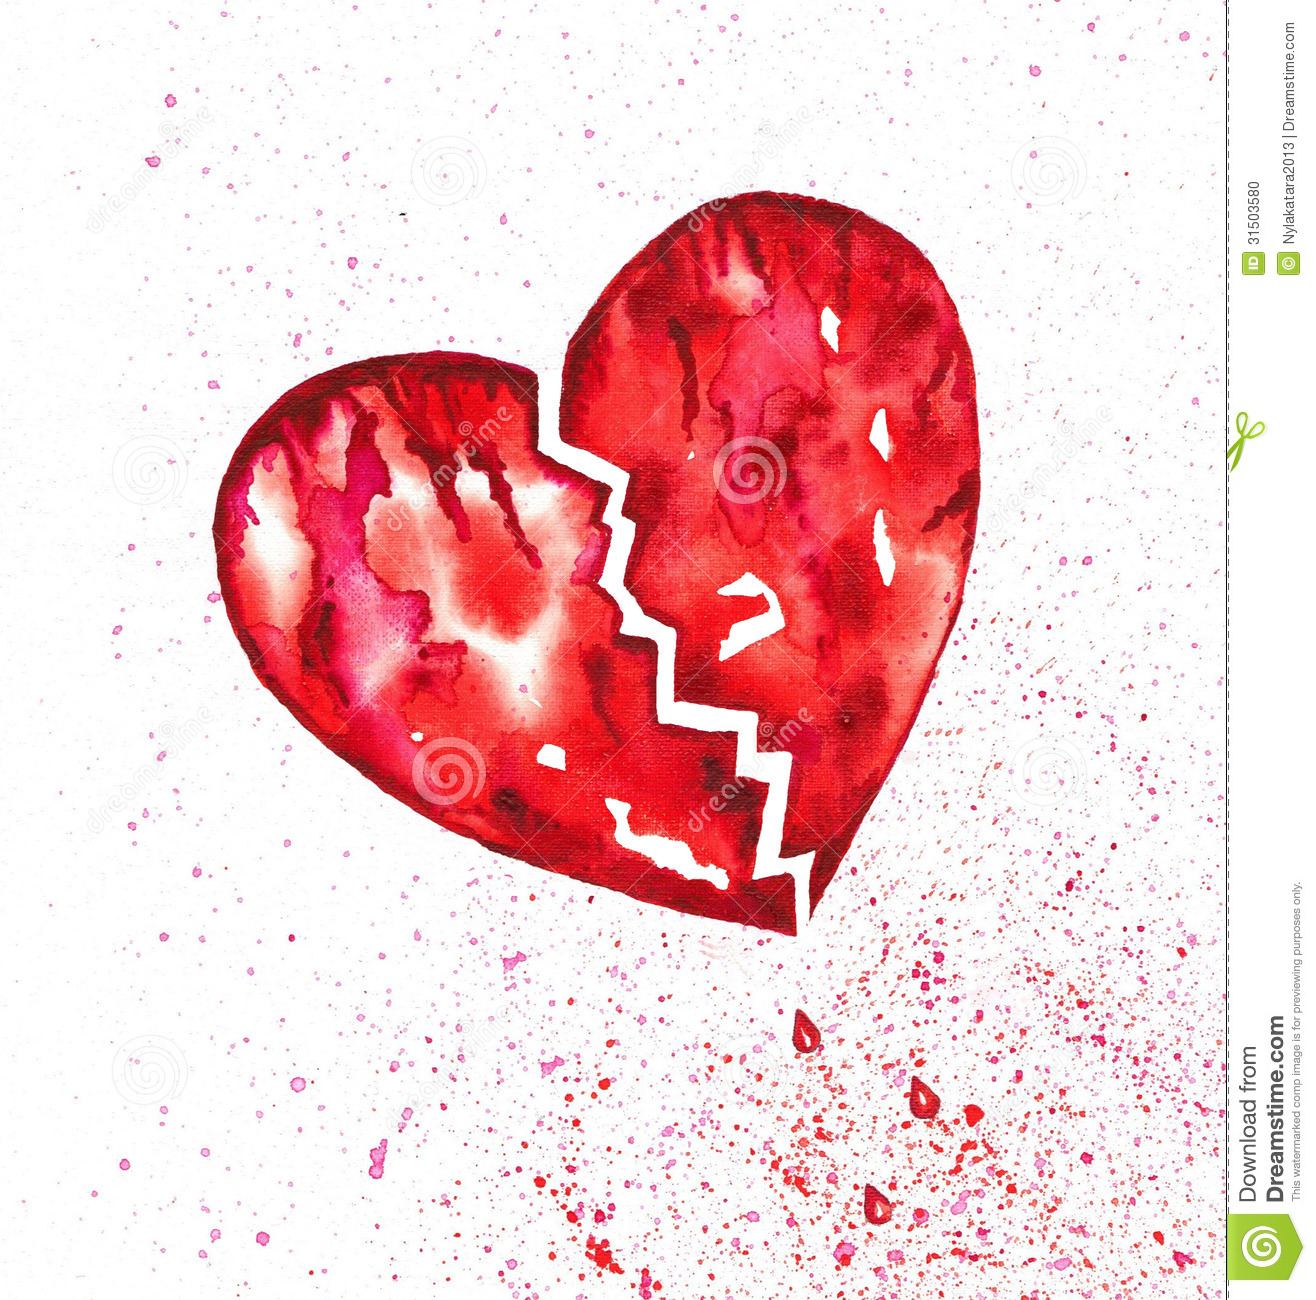 Broken Bleeding Heart With Splatter Watercolor Illustration 31503580